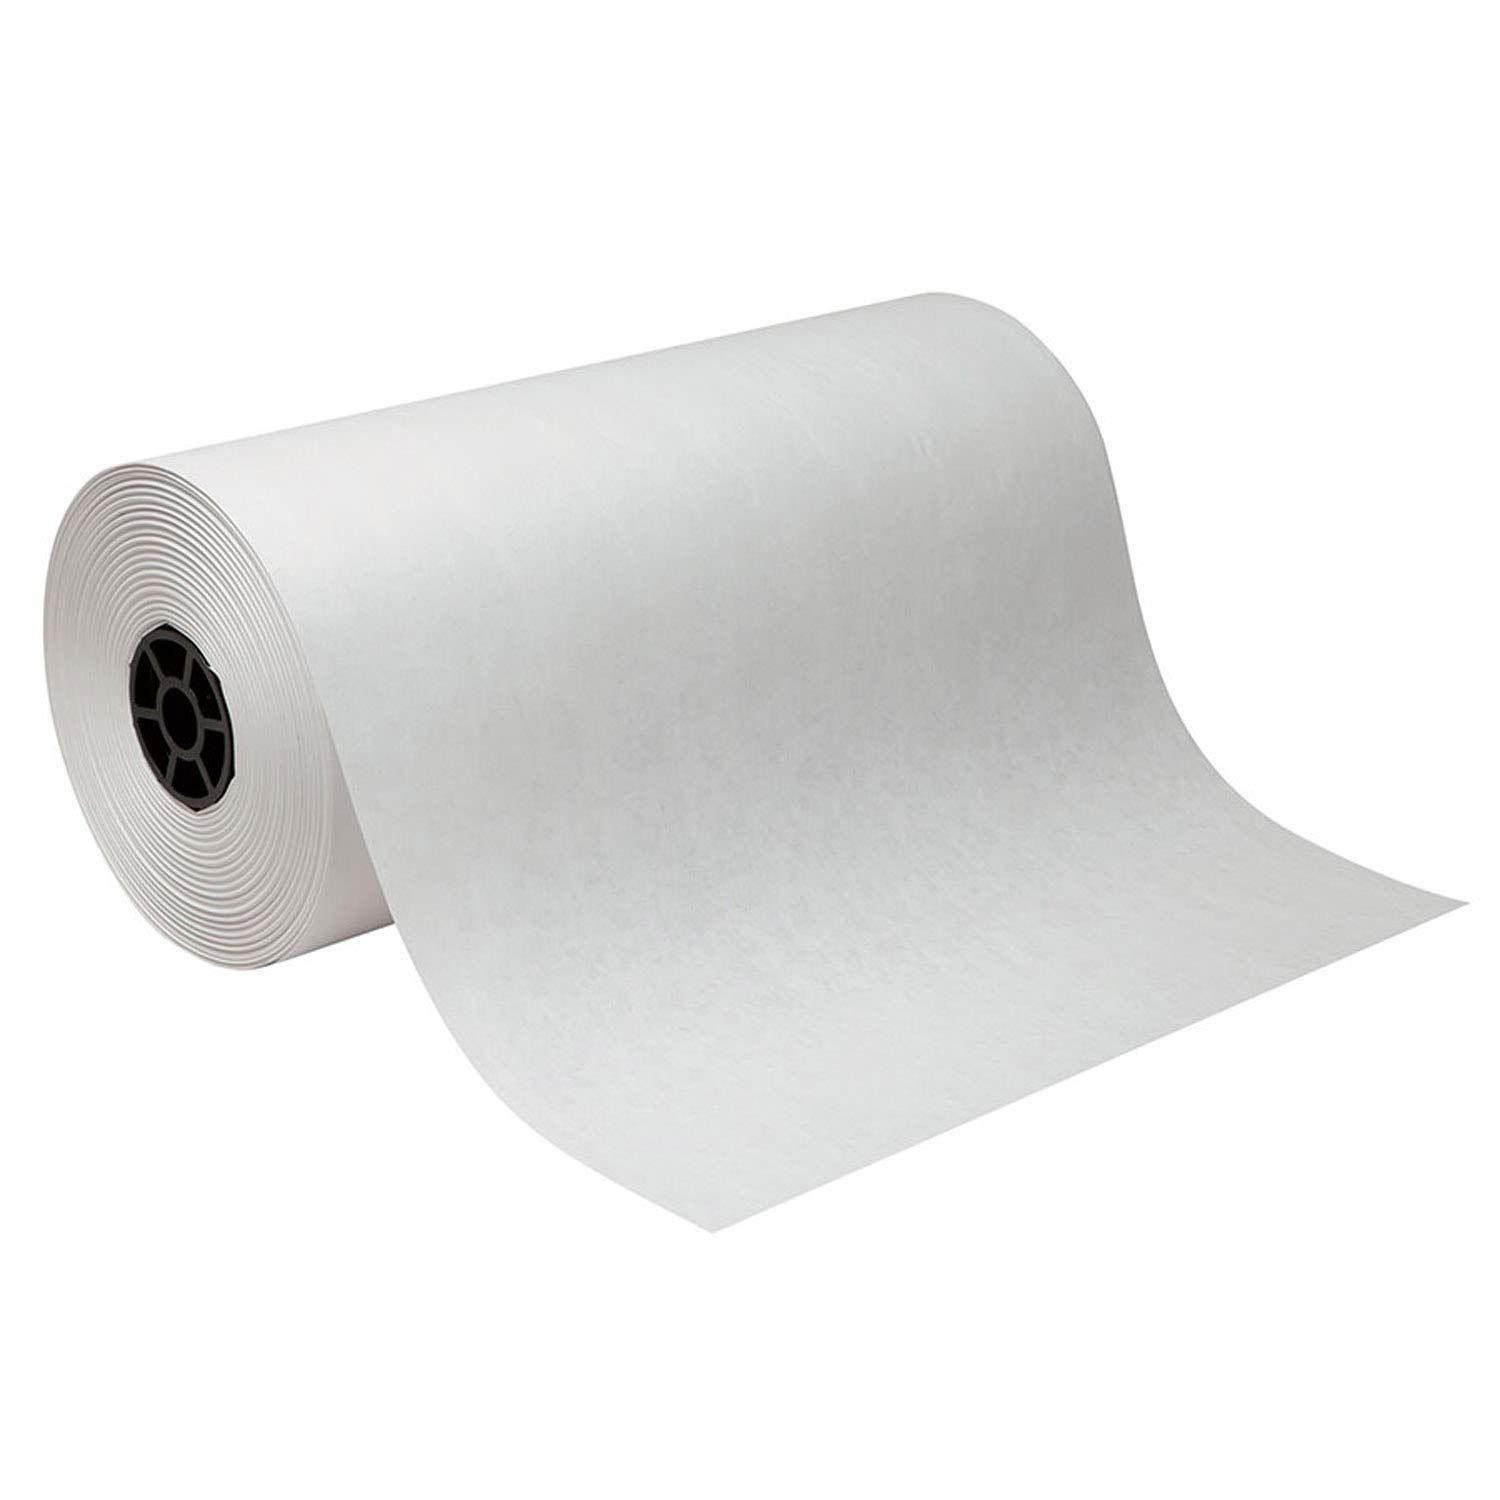 Pacon PAC5618 Lightweight Kraft Roll, White, 18'' x 1000', 1 Roll by PACON